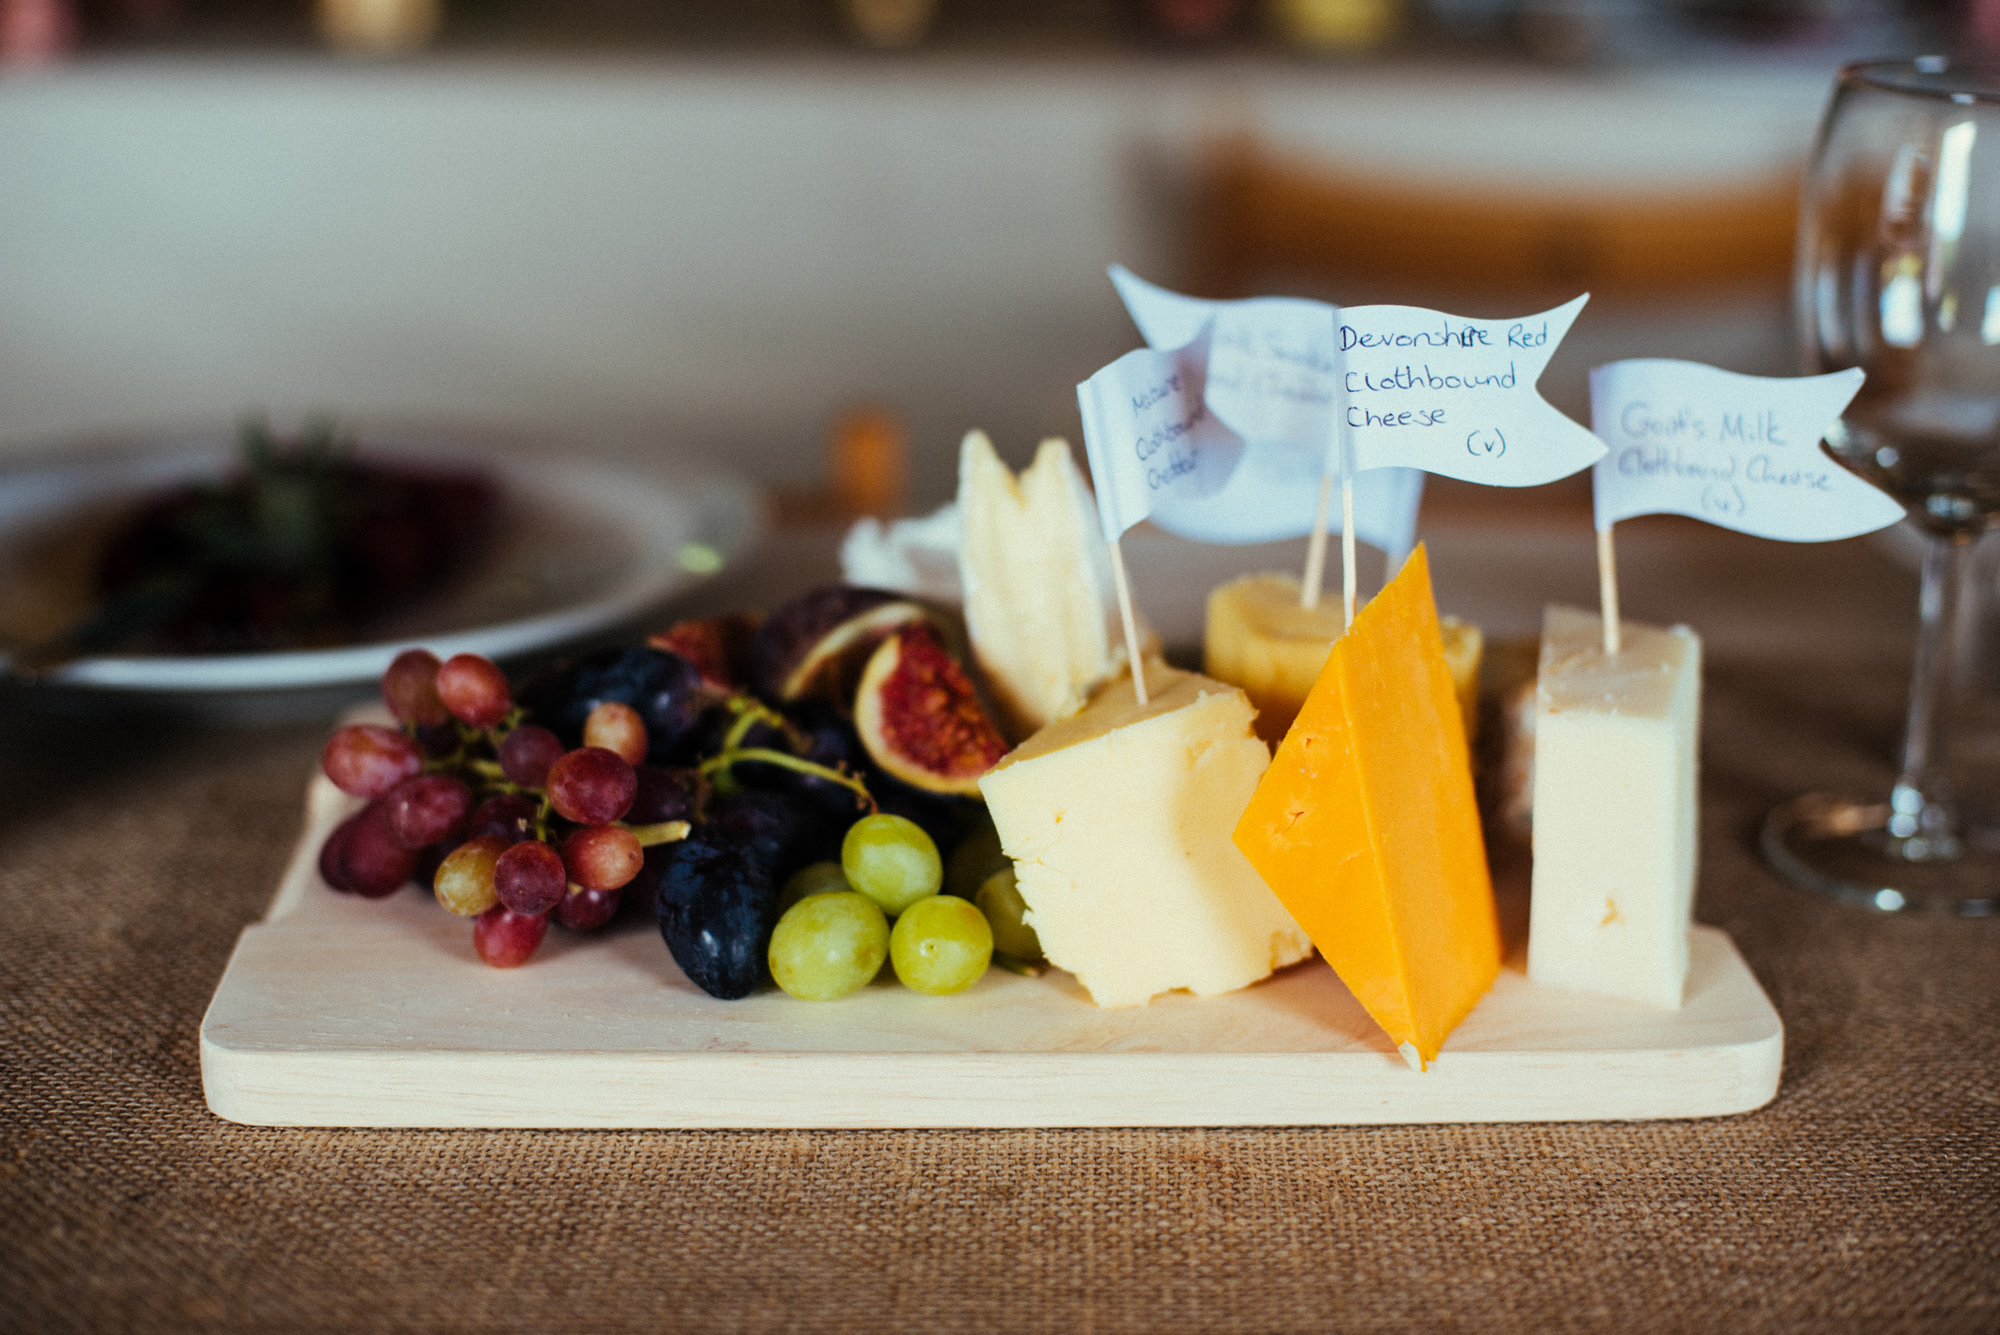 63-cheese-ploughmans-rustic-wedding-food